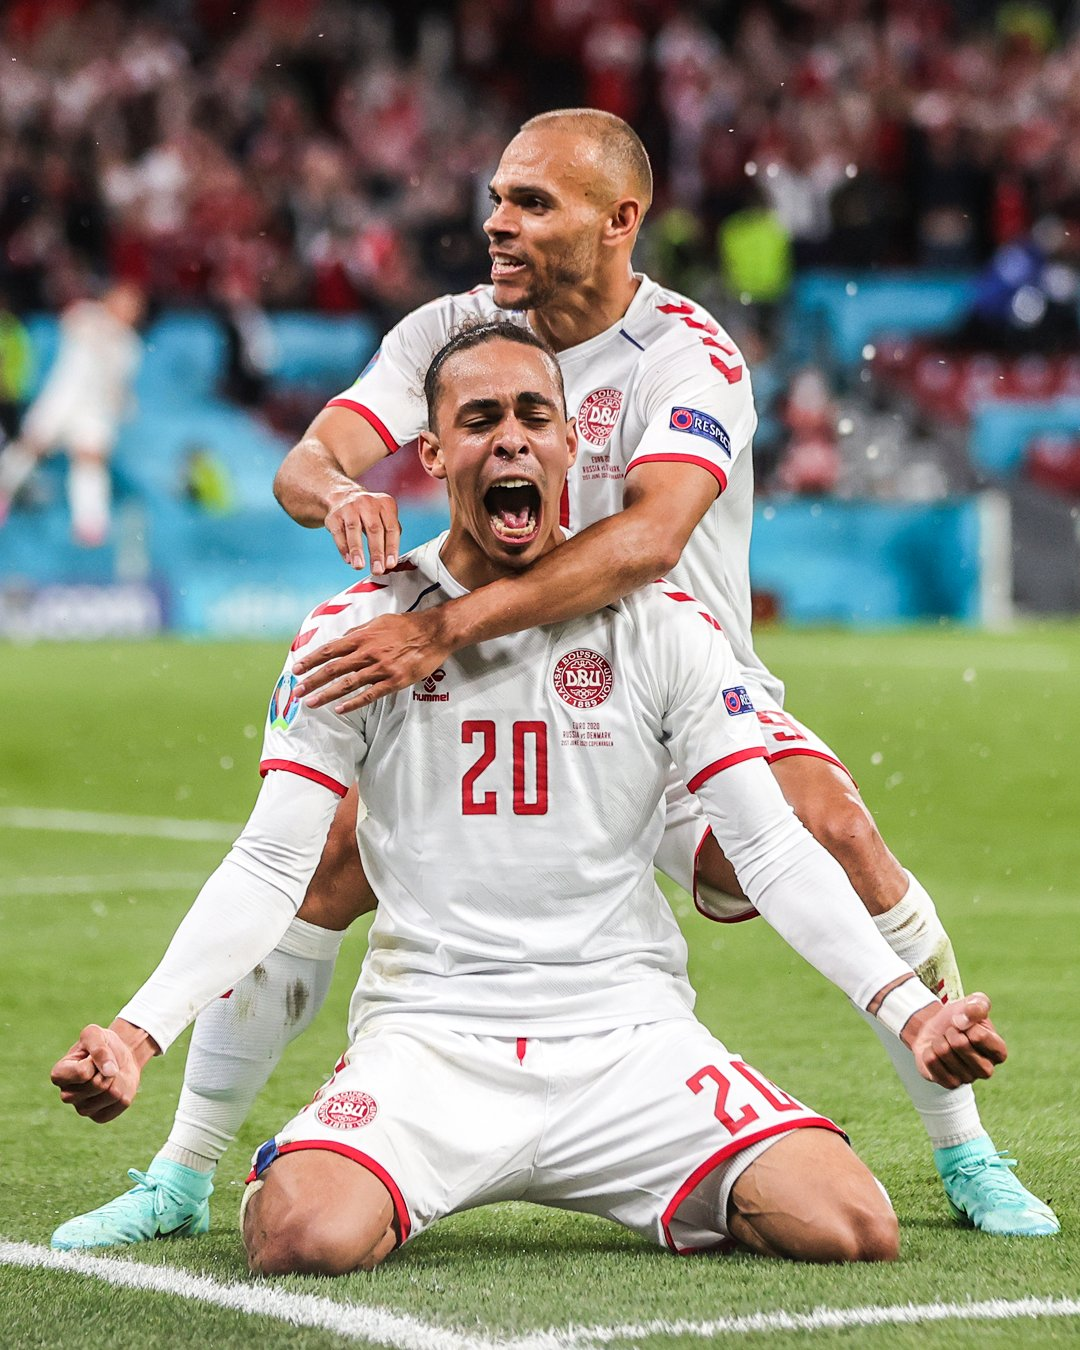 Denmark make it through to the last four after weathering a second-half storm in Baku